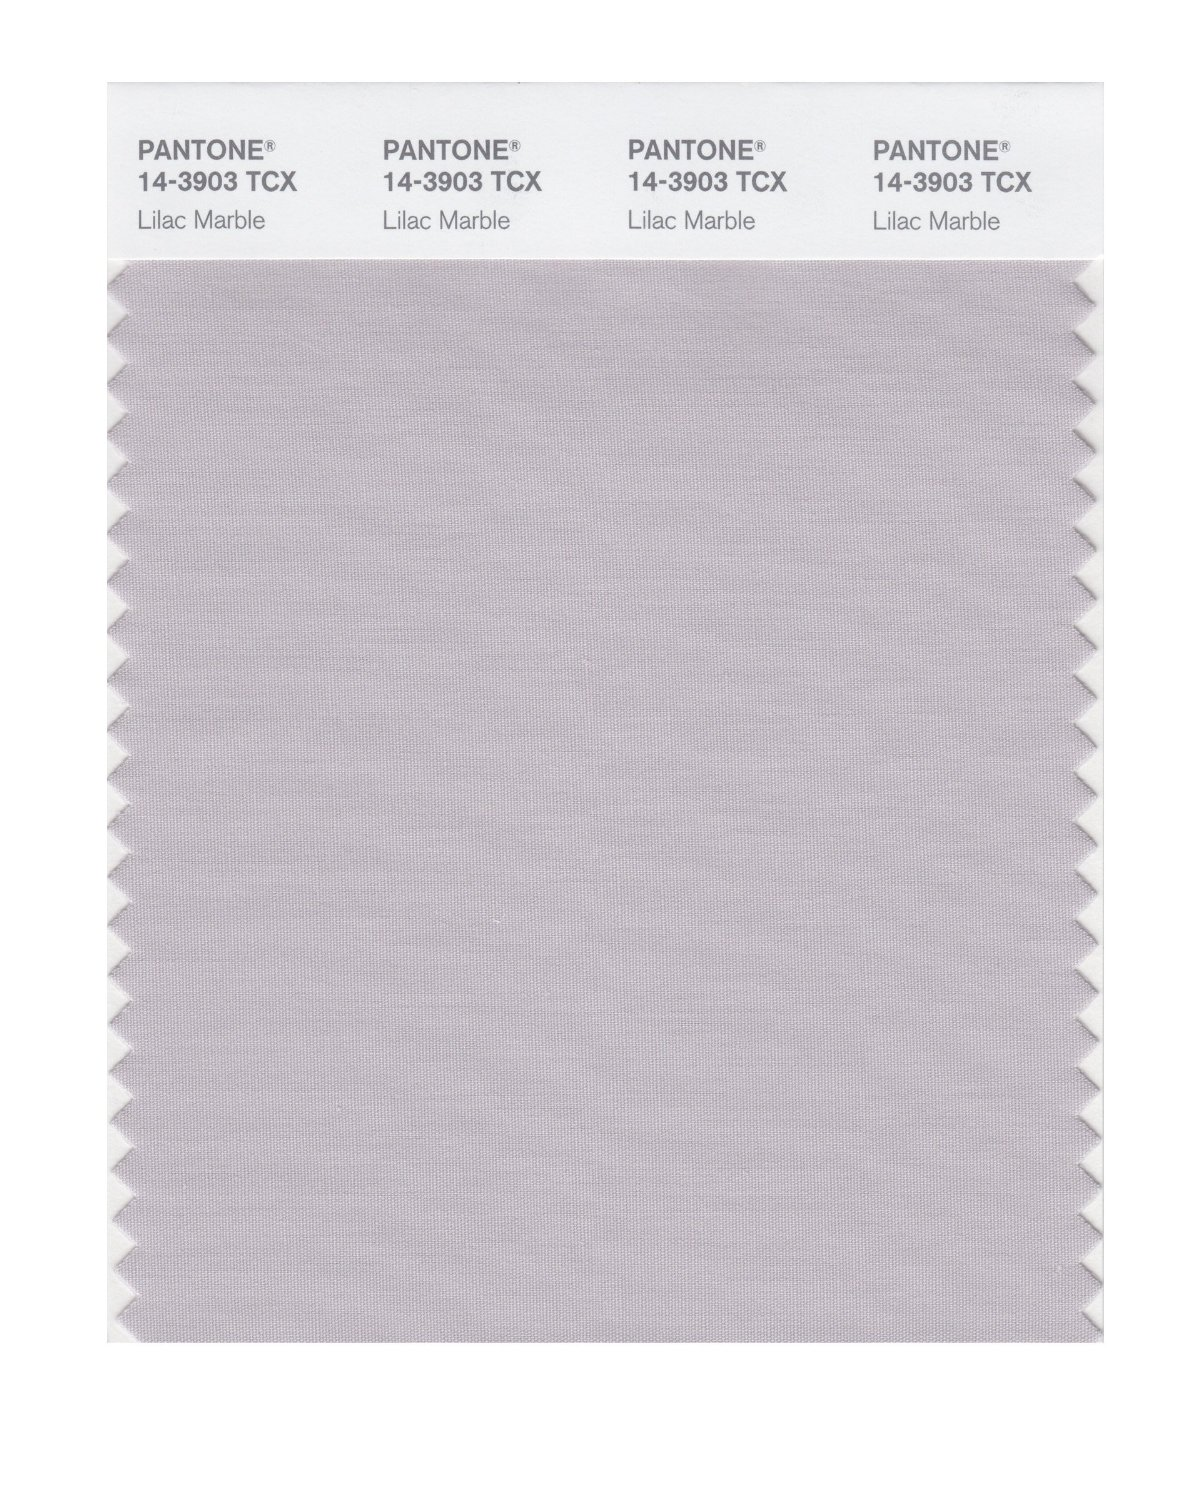 Pantone Smart Swatch 14-3903 Lilac Marble